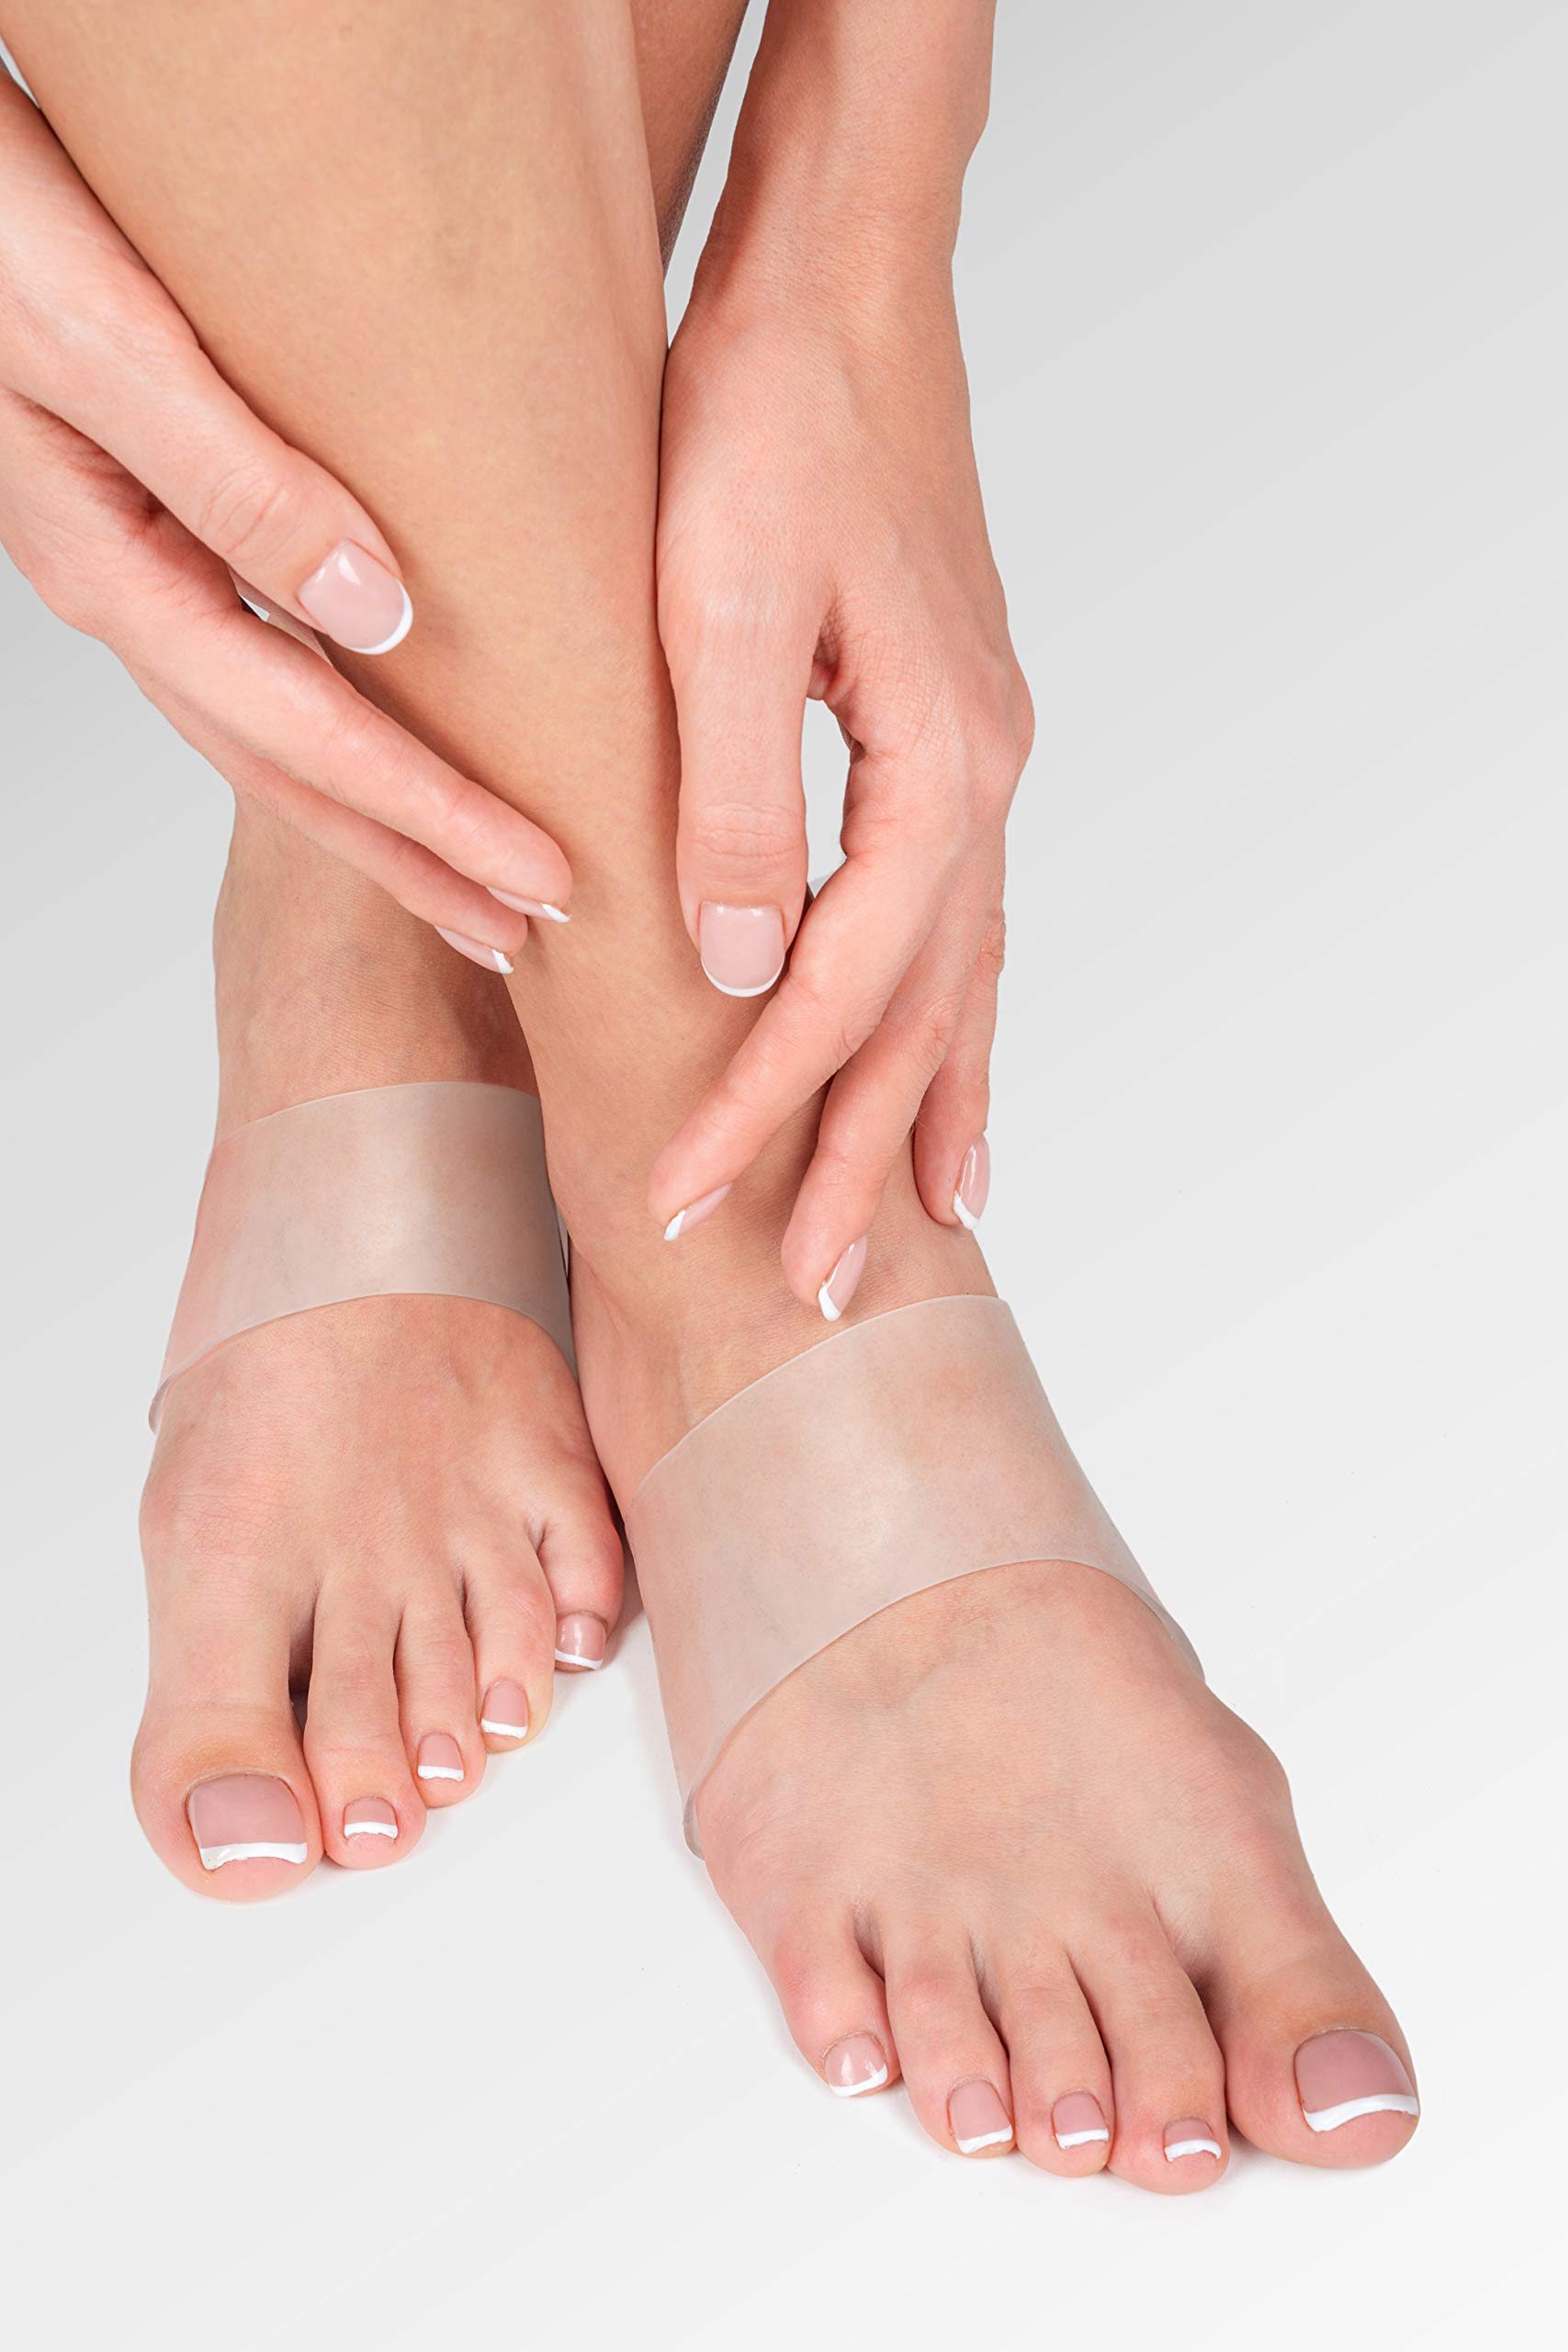 Gel Arch Support Set - Soft Silicone Clear Reusable Arch Sleeves for Flat Foot Pain Relief Plantar Fasciitis Support Cushioned Arch and Heel Spurs - Women Men - Large M5-13 / W7-14 by BRISON (Image #3)